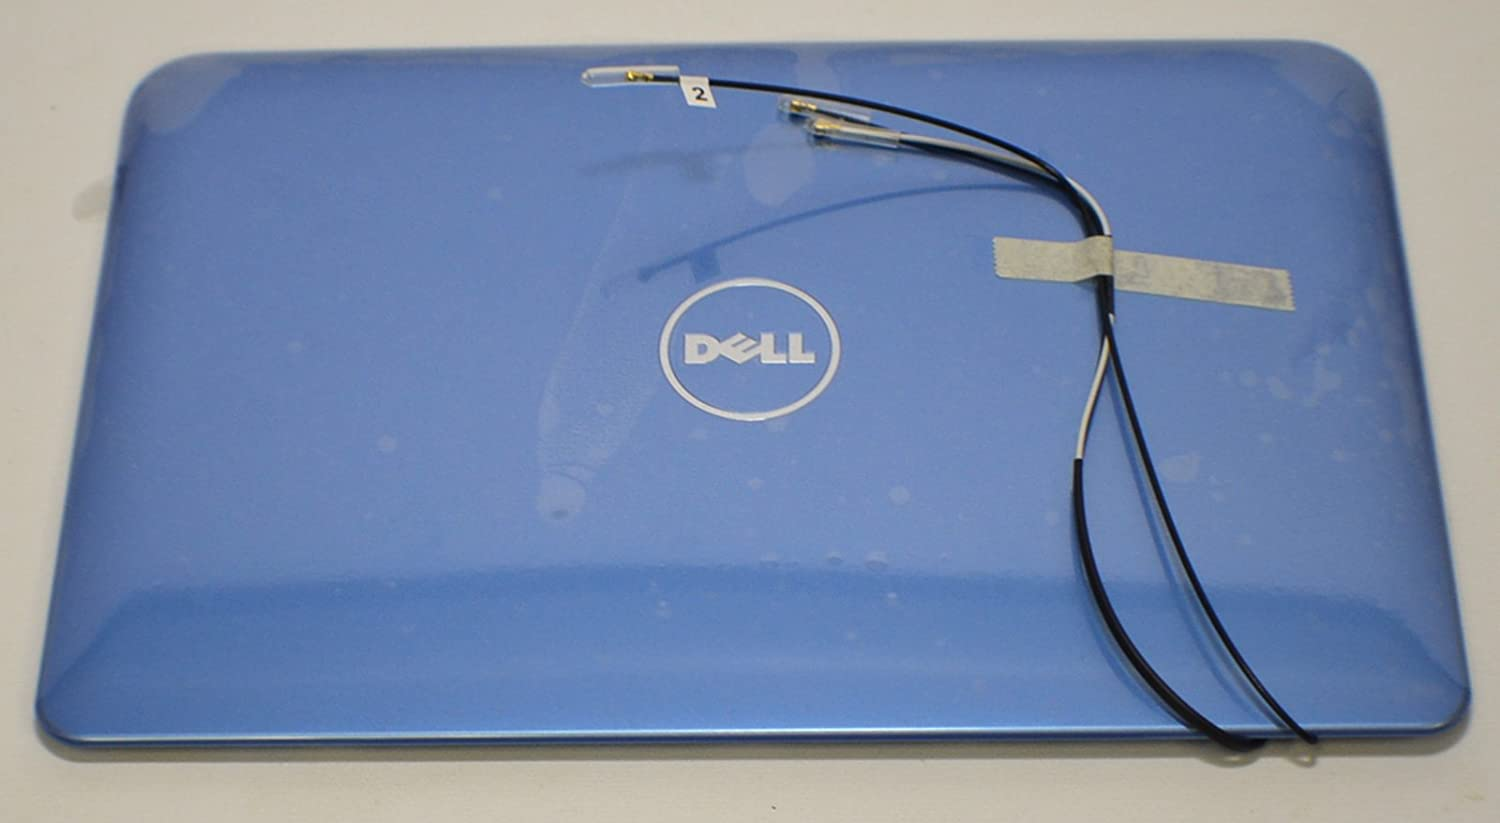 Dell New Inspiron Mini 10 1012 LCD Screen Top Lid Rear Back Cover Monitor Panel Blue CDWMV WWAN Antenna Cable Wire Inspirion Insprion Case Enclosure Housing Casing Visual Display 10.1